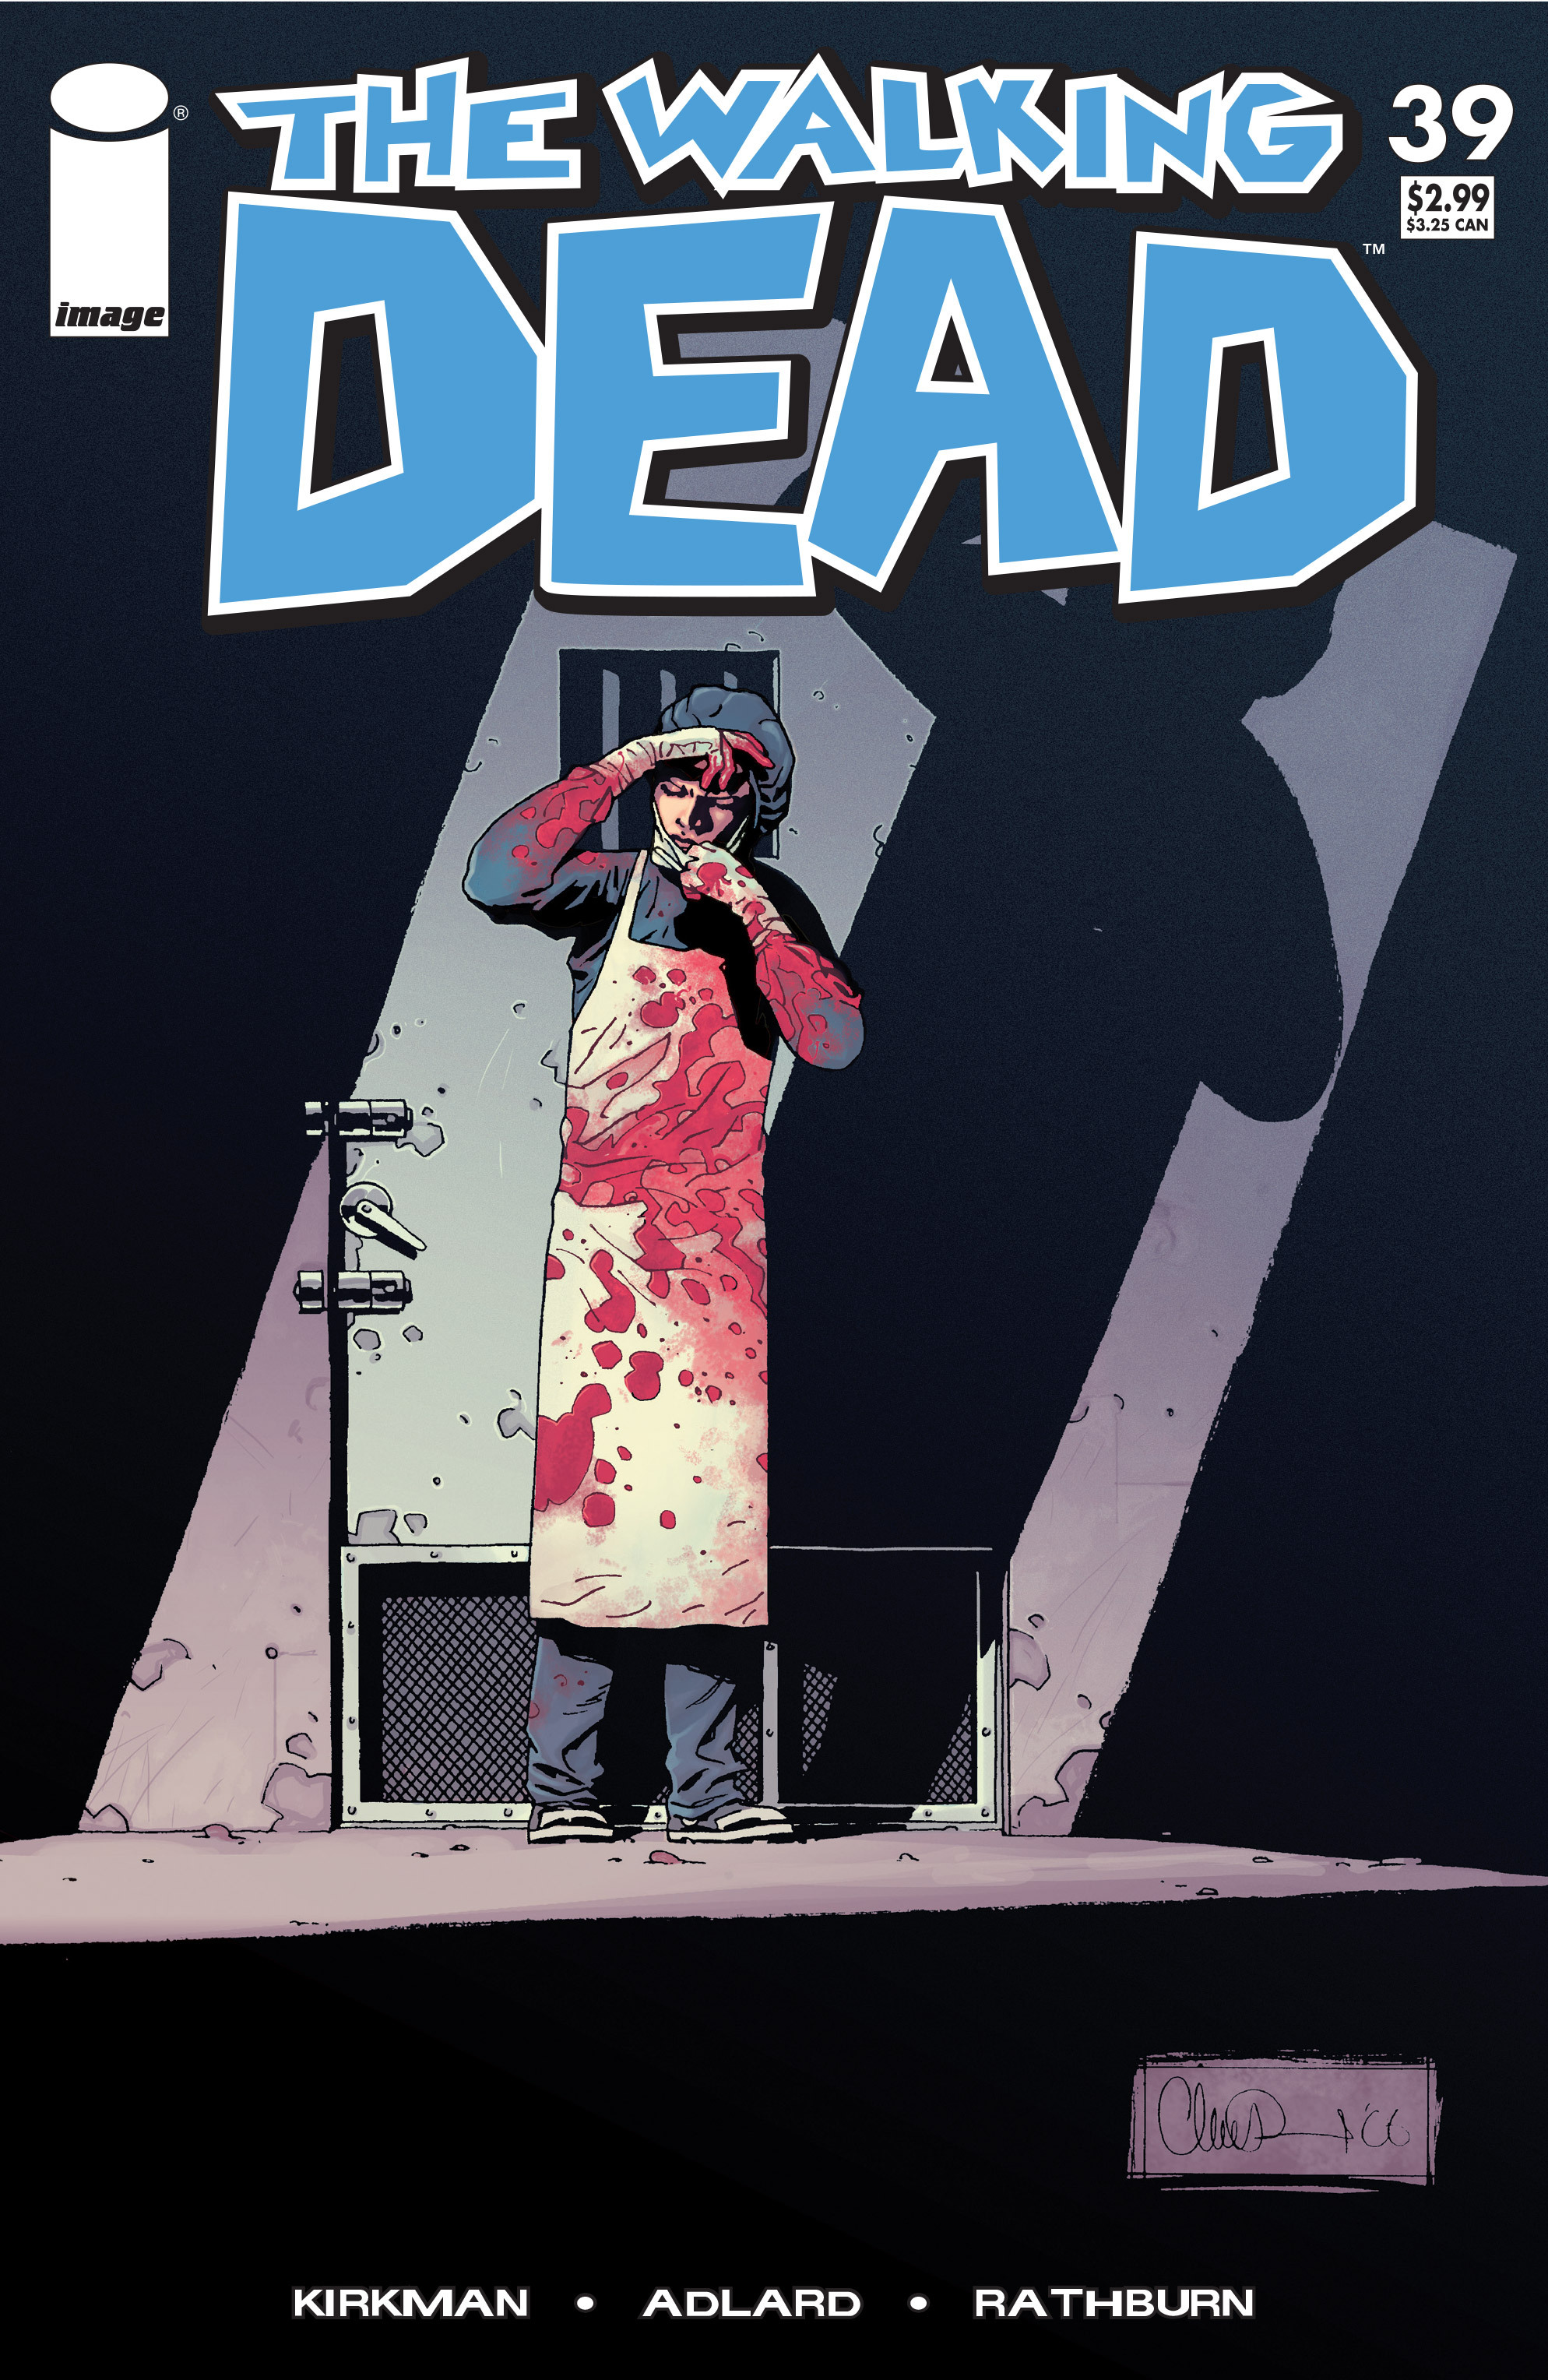 The Walking Dead 39 Page 1